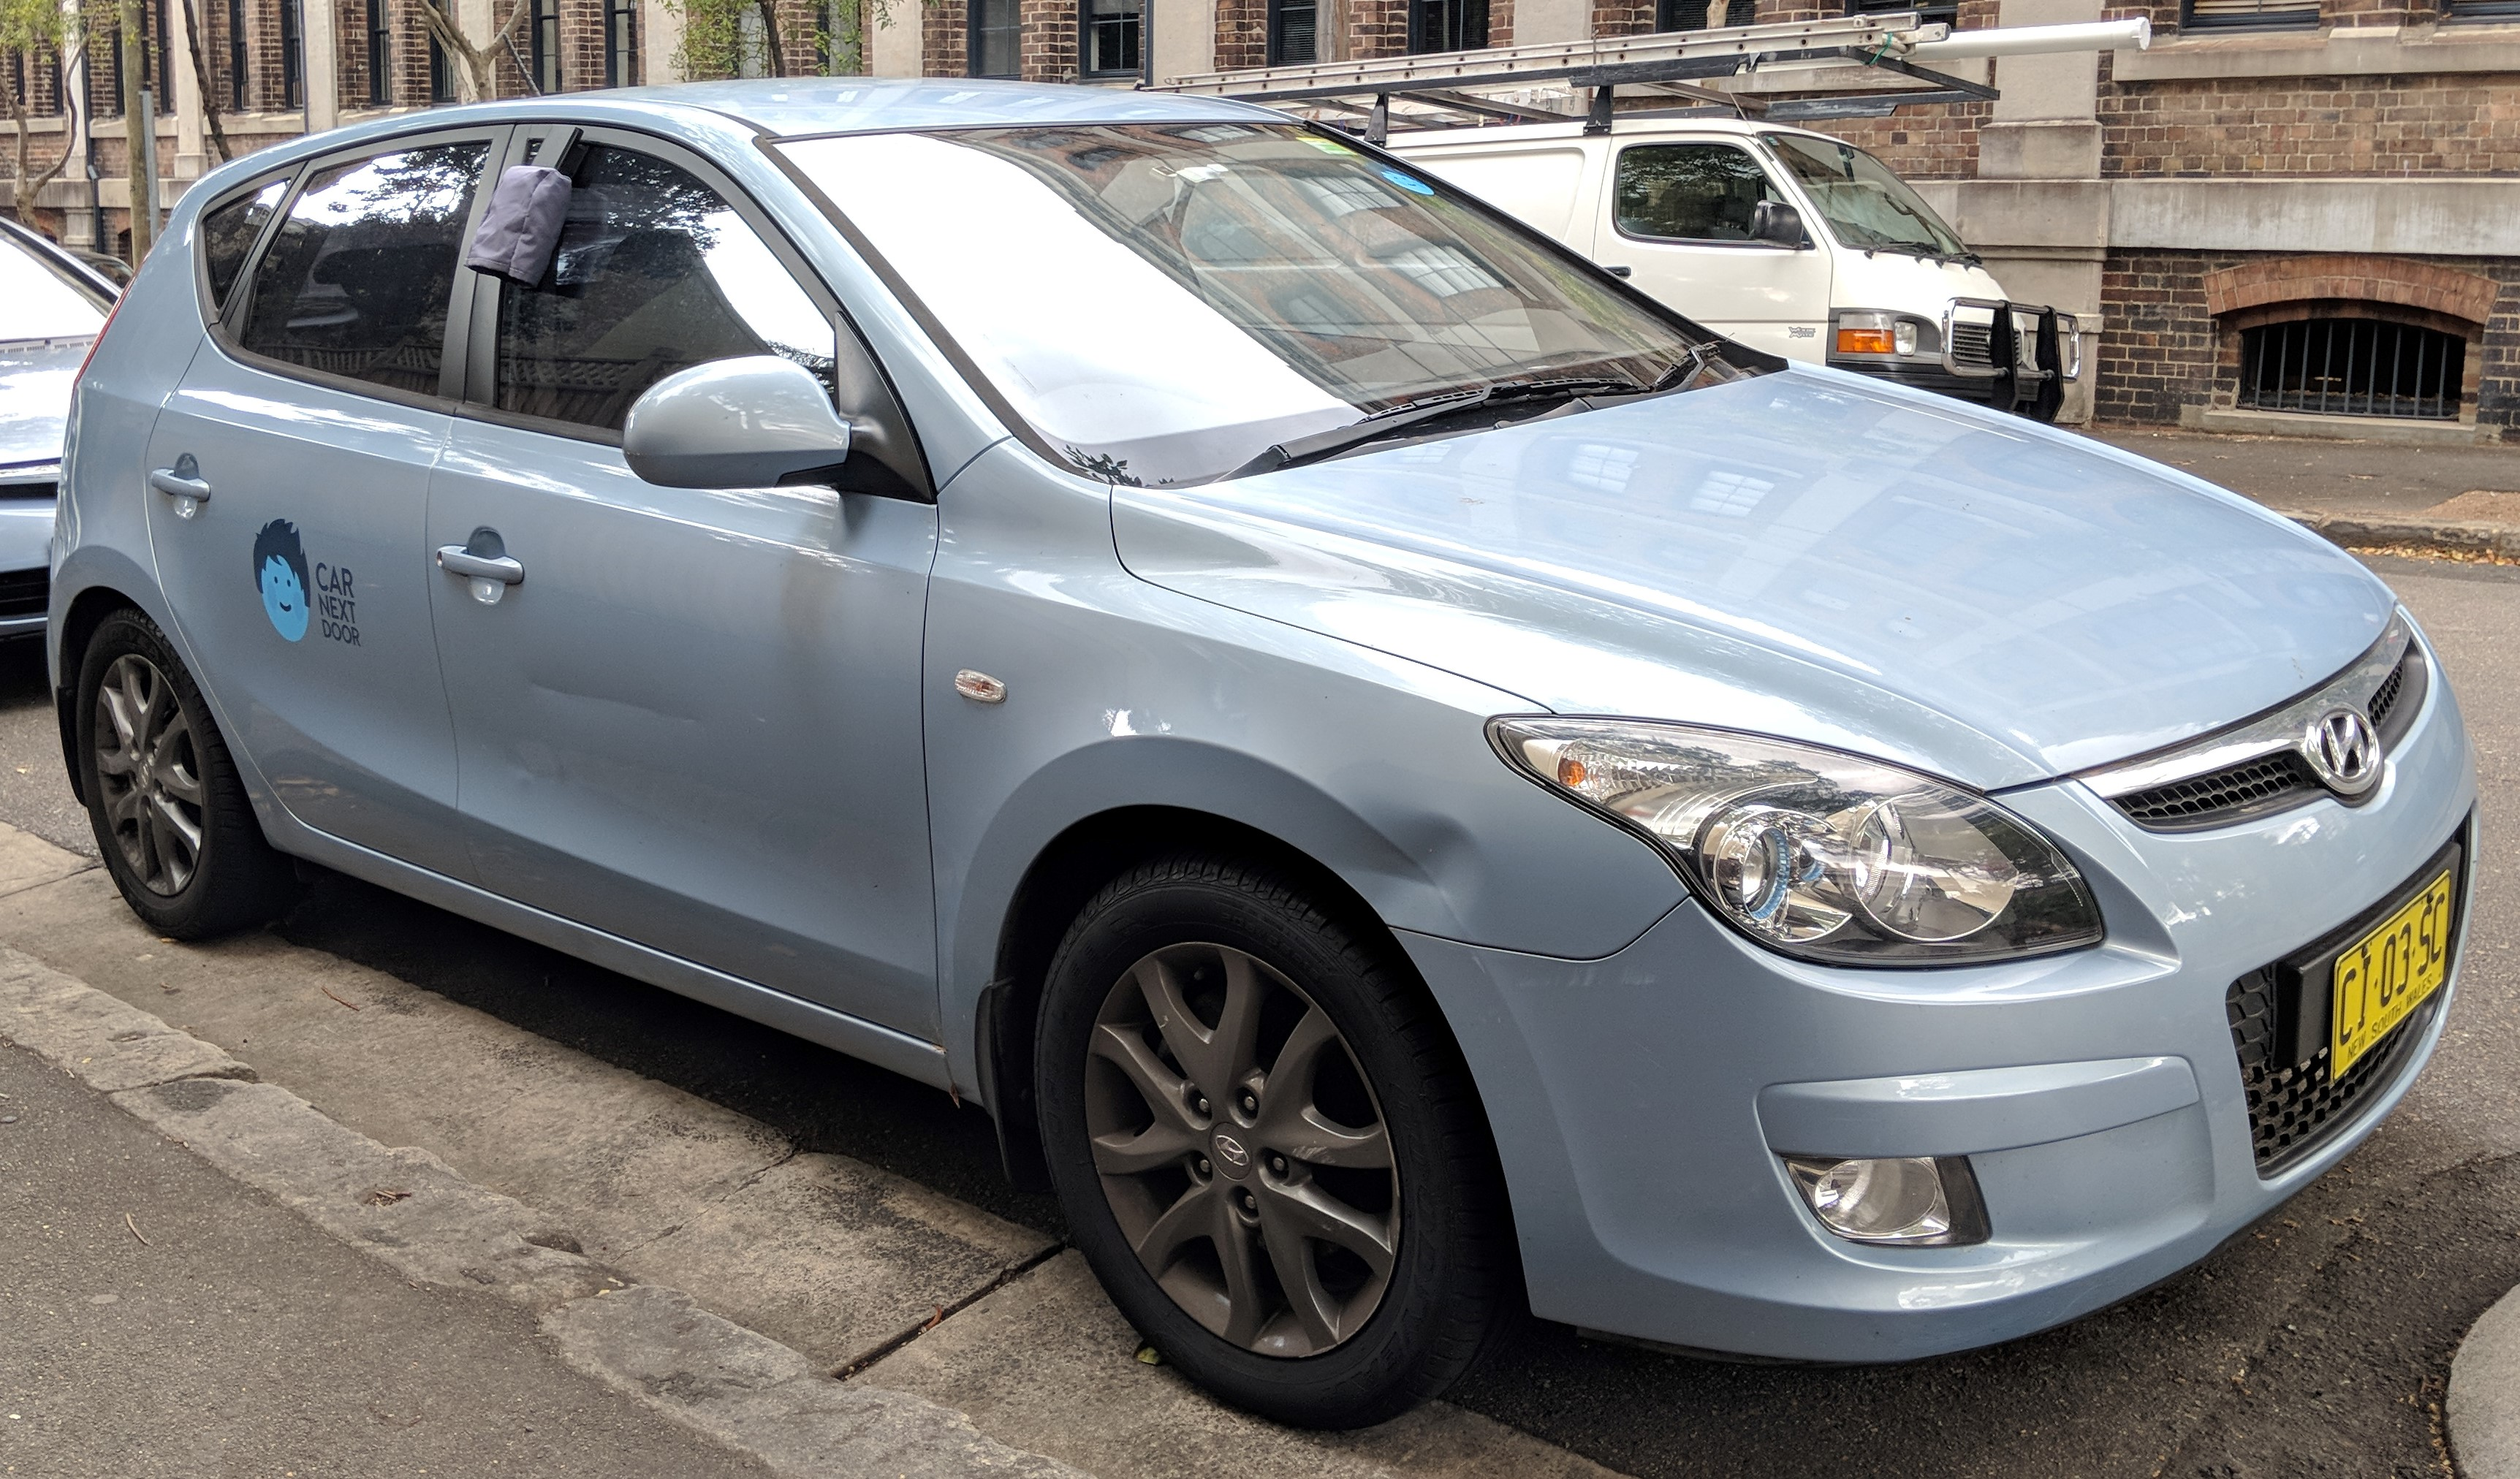 Picture of Francis' 2010 Hyundai i30